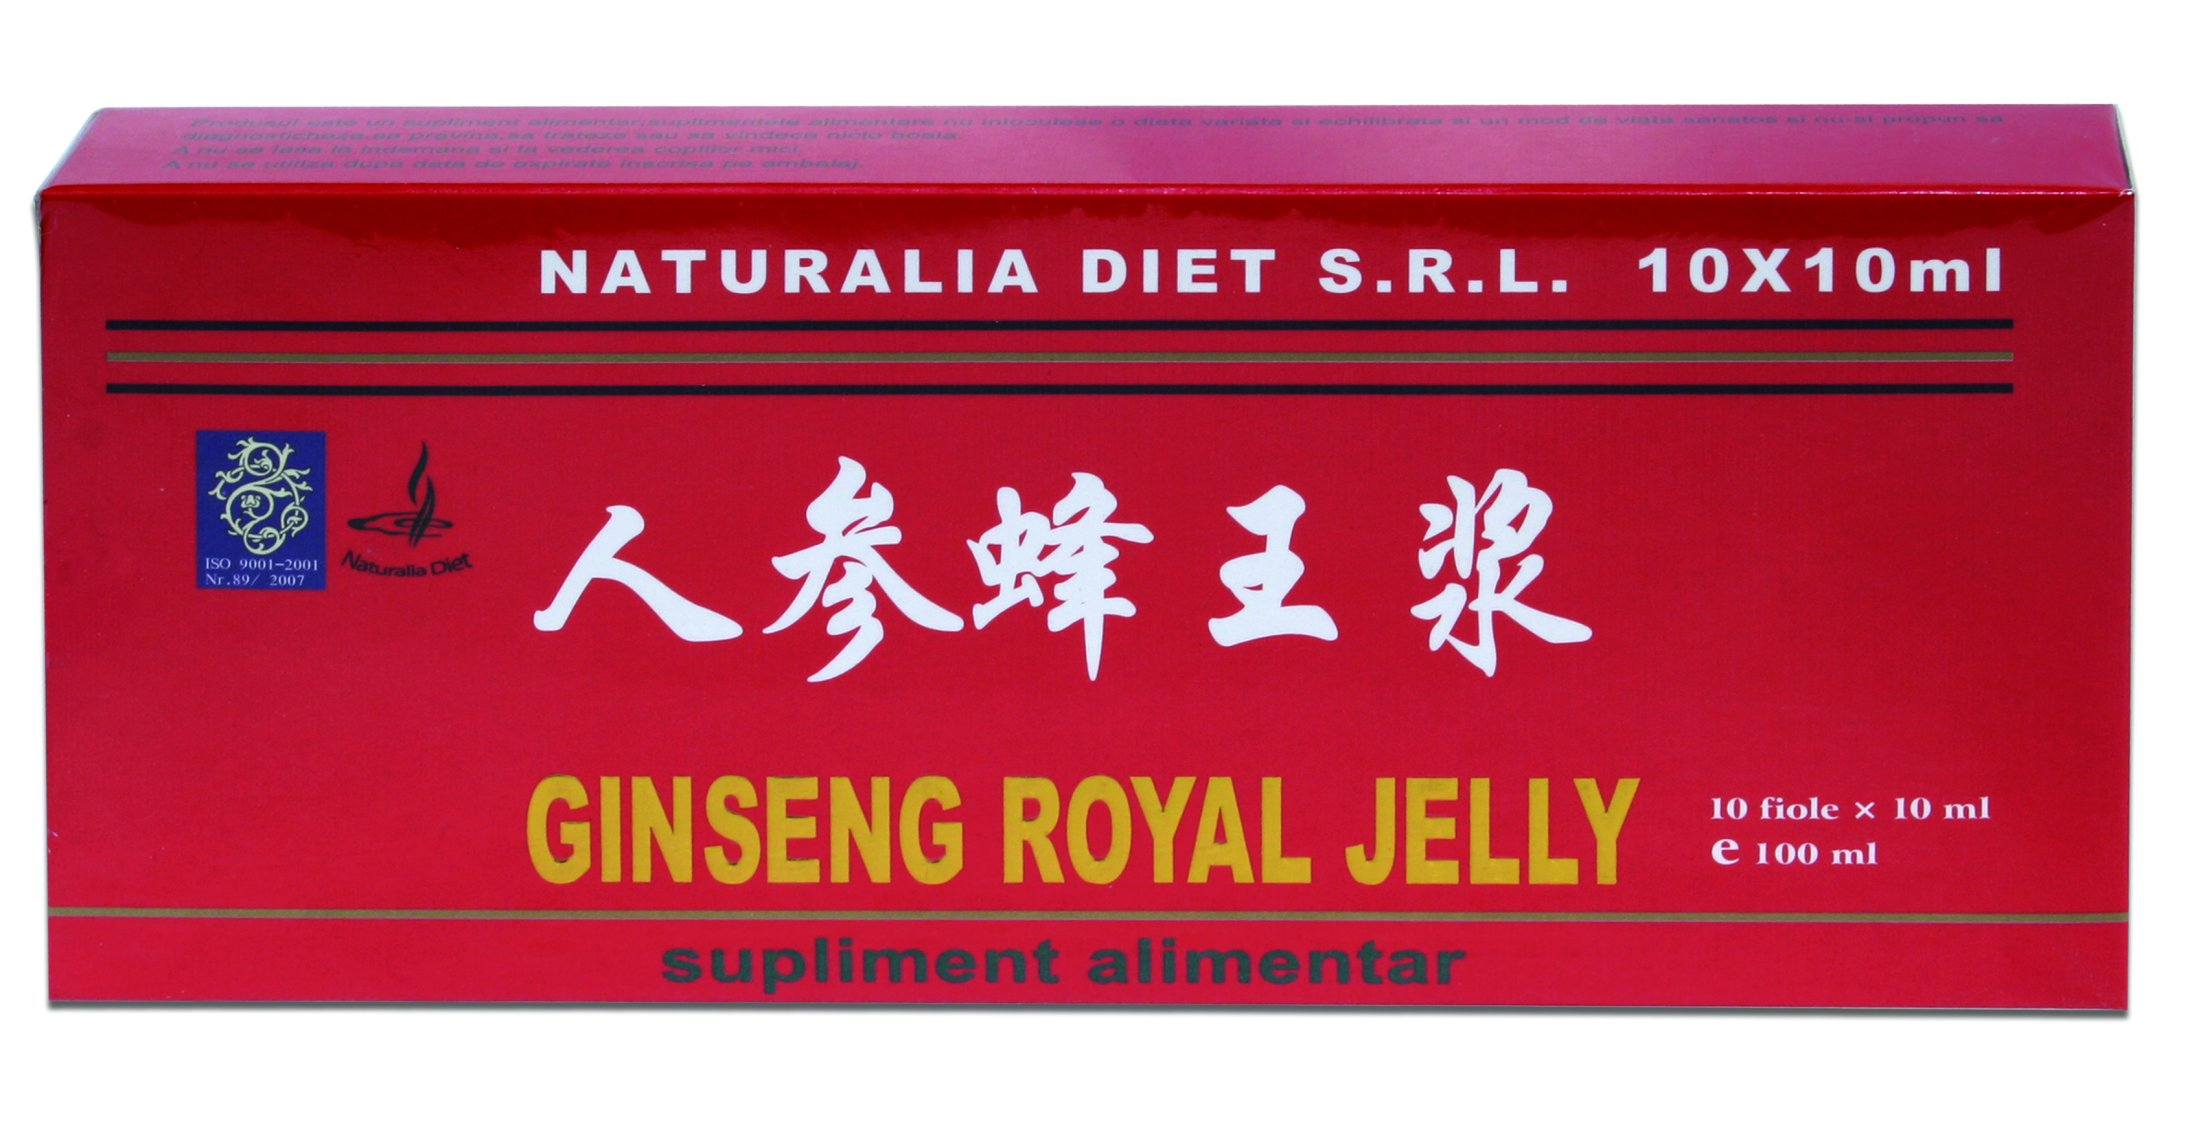 GINSENG & ROYAL JELLY 10 fiole x 10 ml, Naturalia Diet